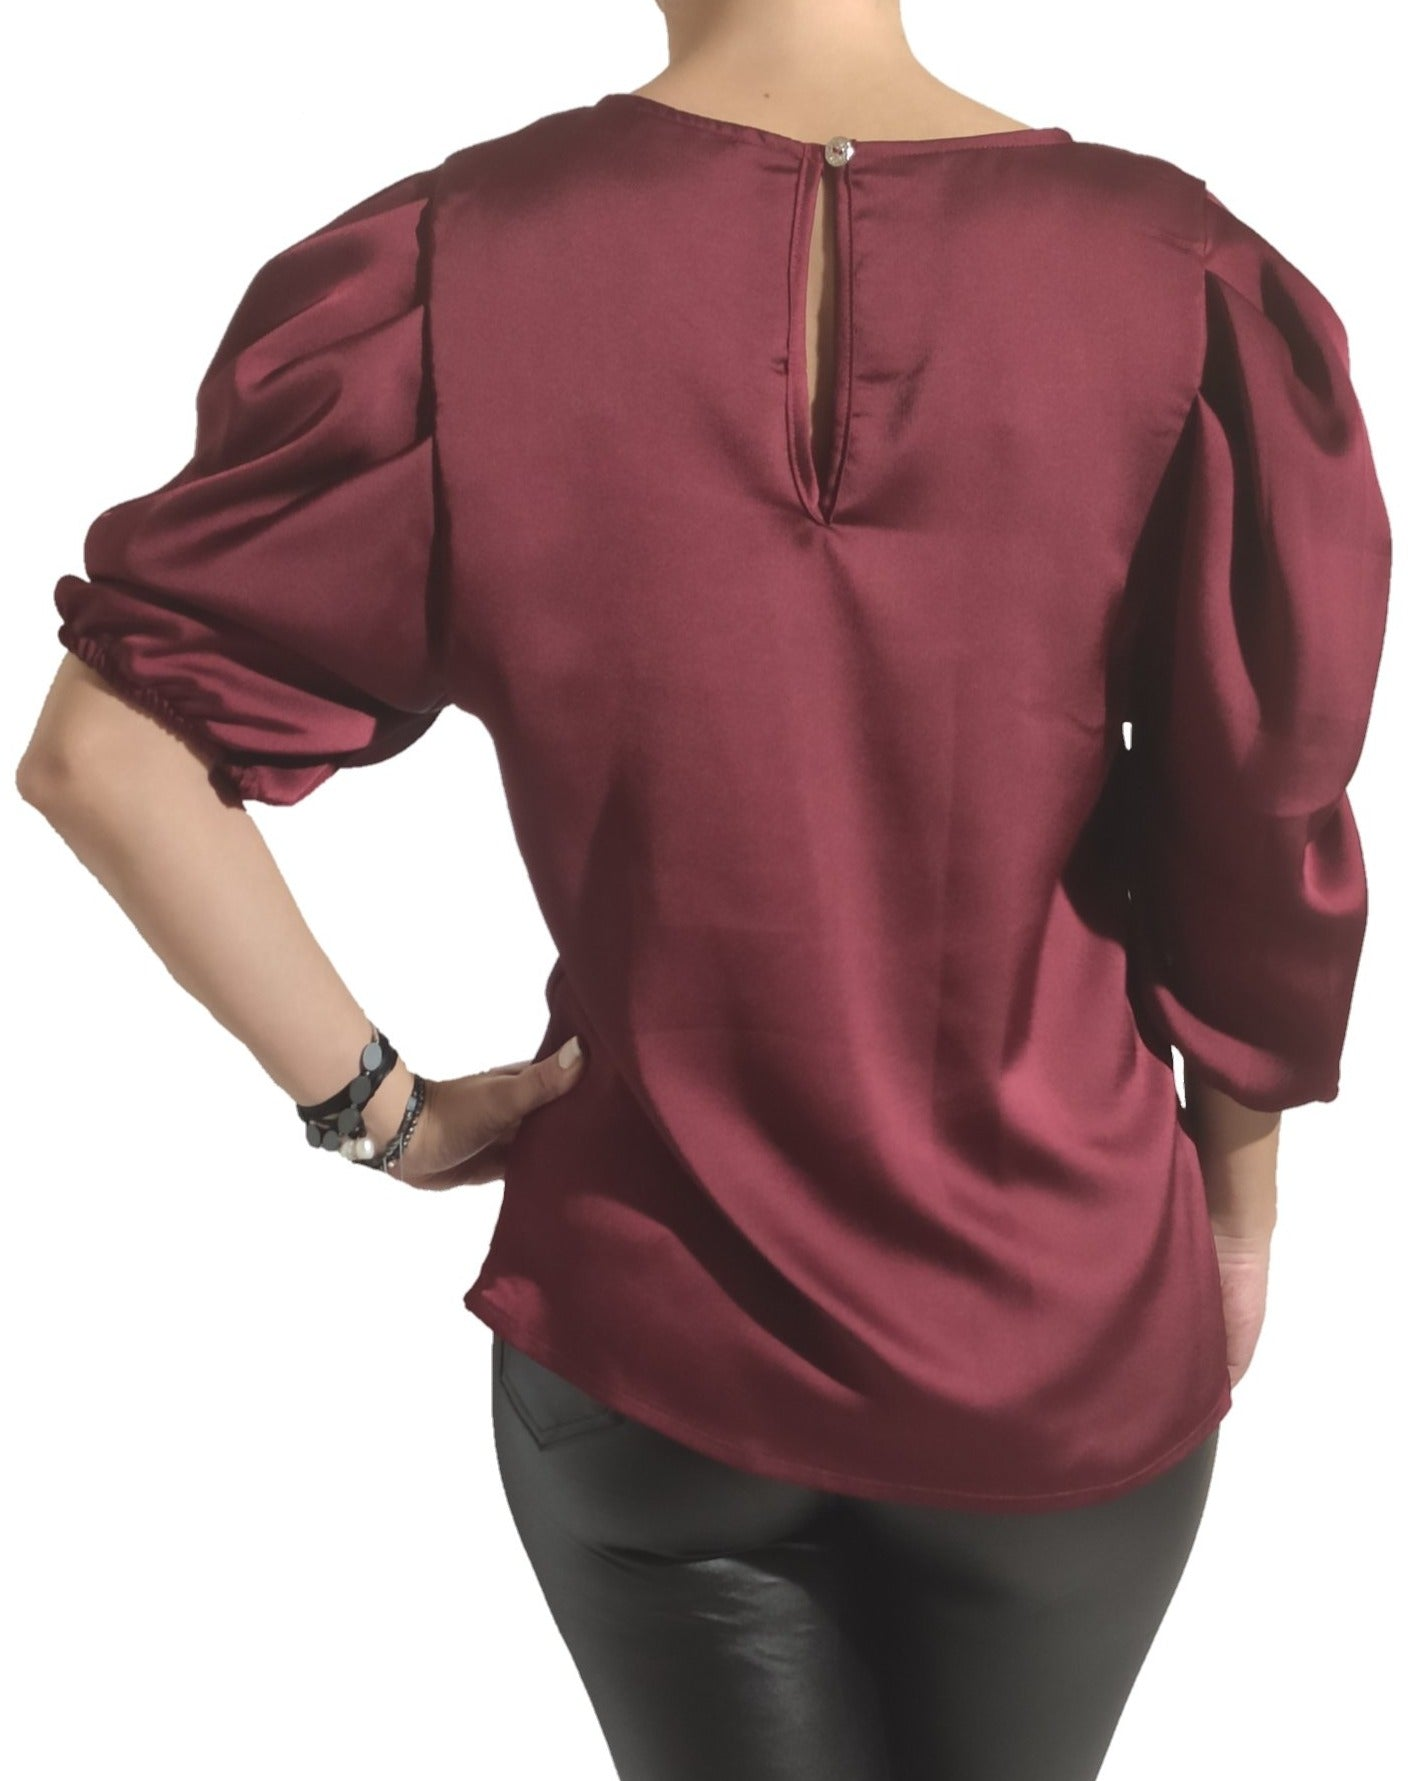 a-woman-wears-a-bordeaux-blouse-back-side